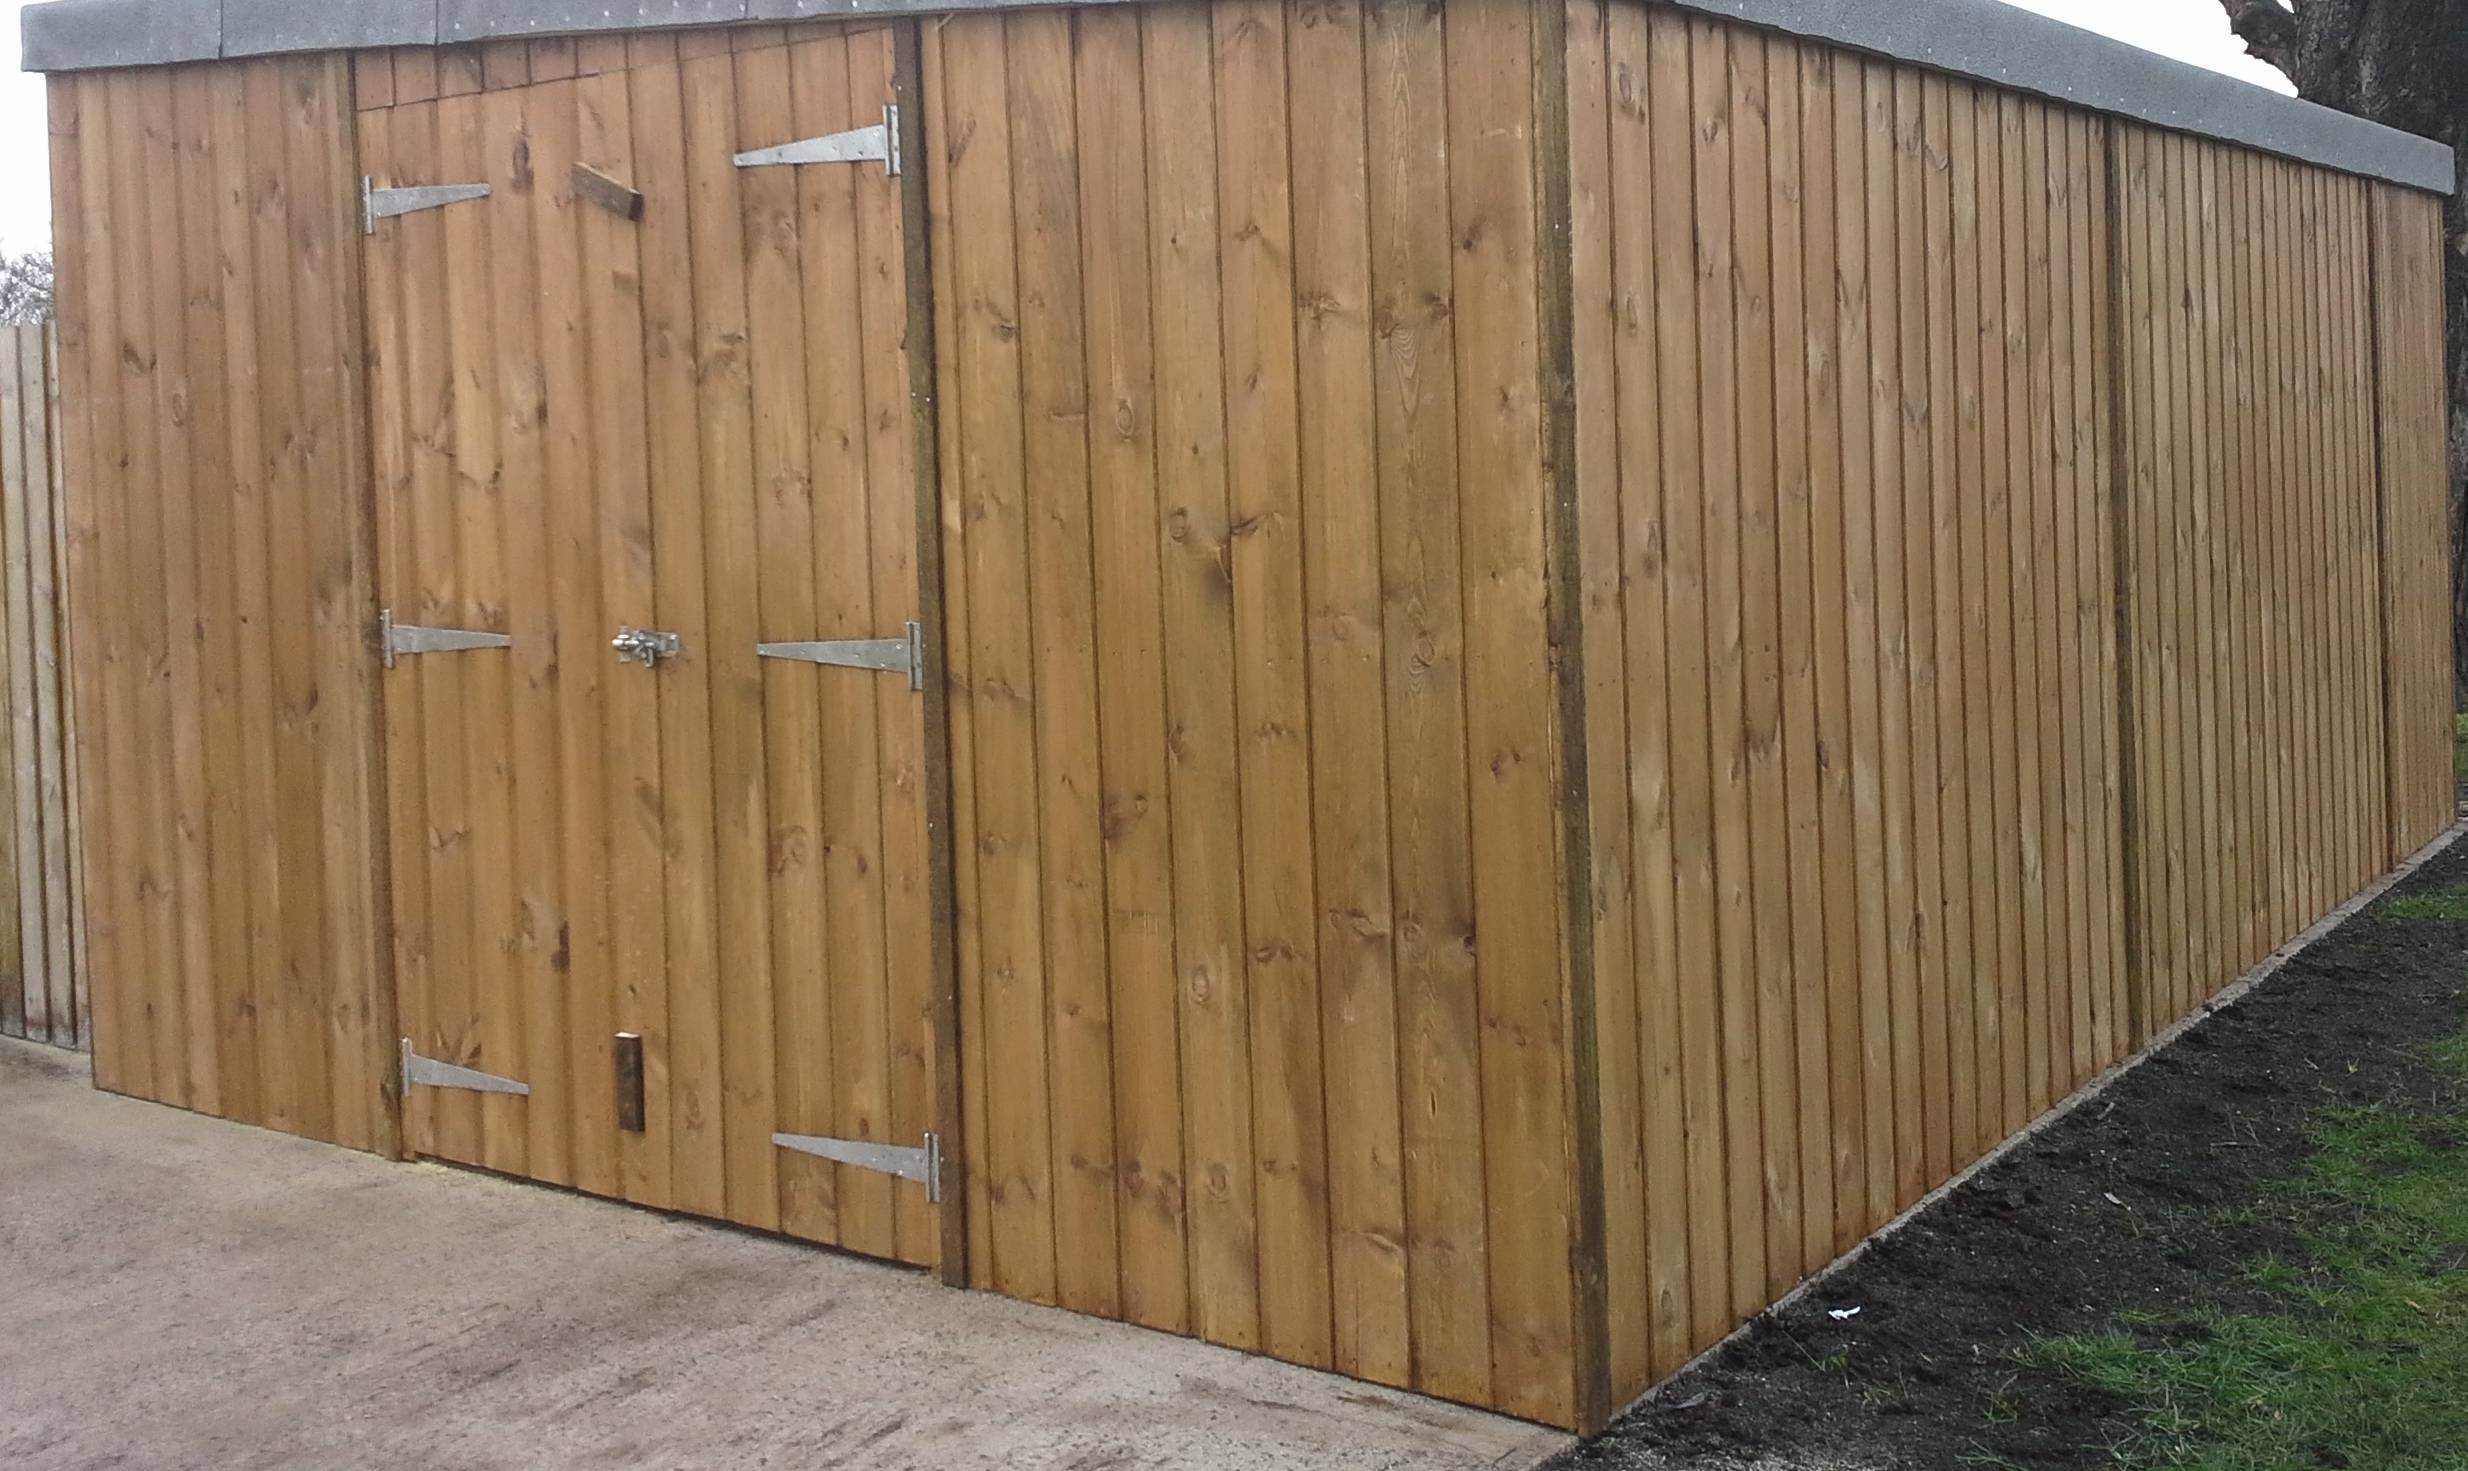 Pent Timber Garage (20' x 12') Vertical Cladding